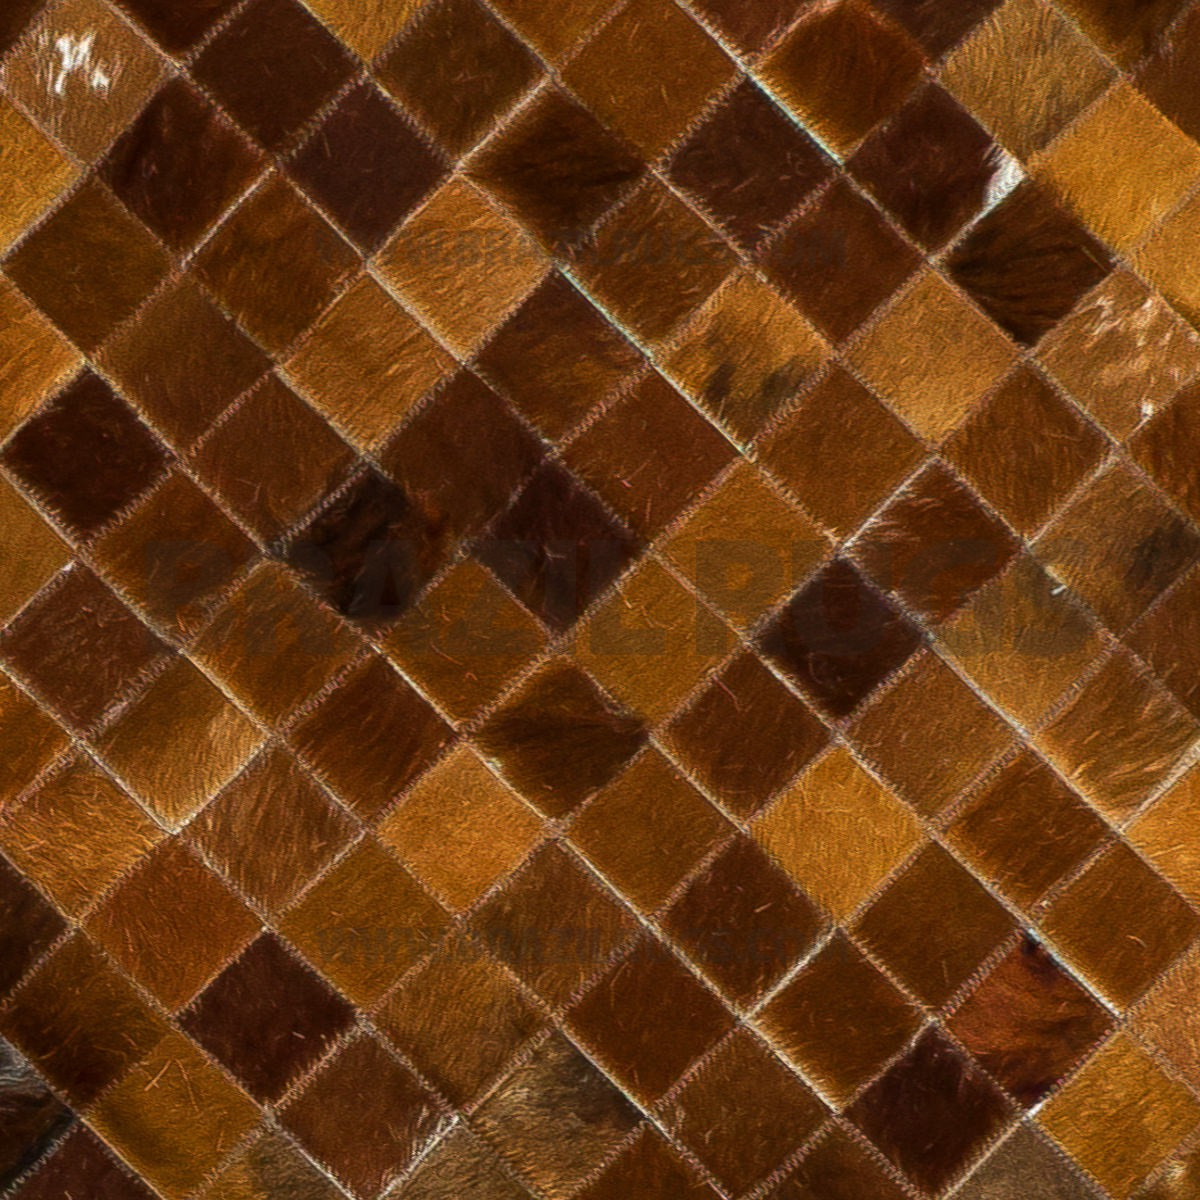 beautiful cowhide patchwork rug in Brown with checked motif for floor decor ideas